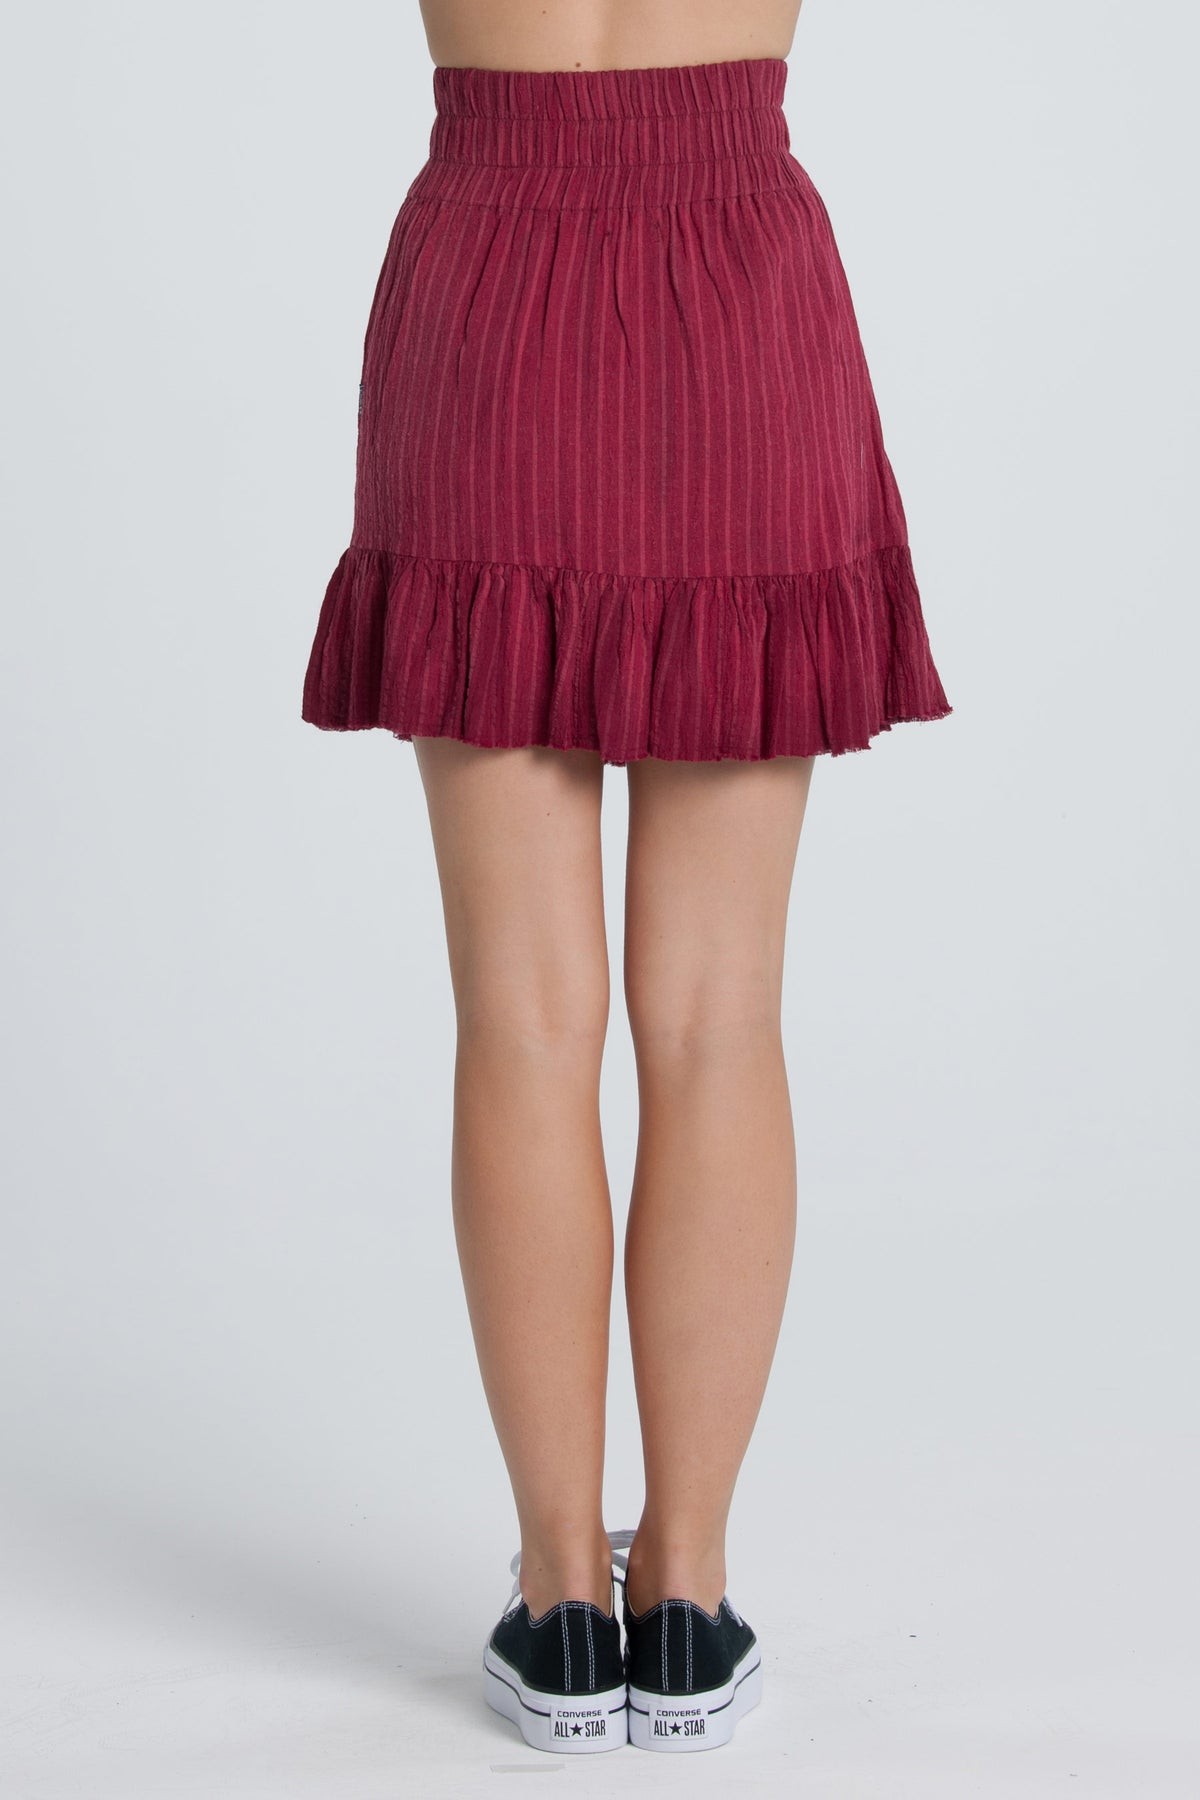 Frida Skirt - Cherry